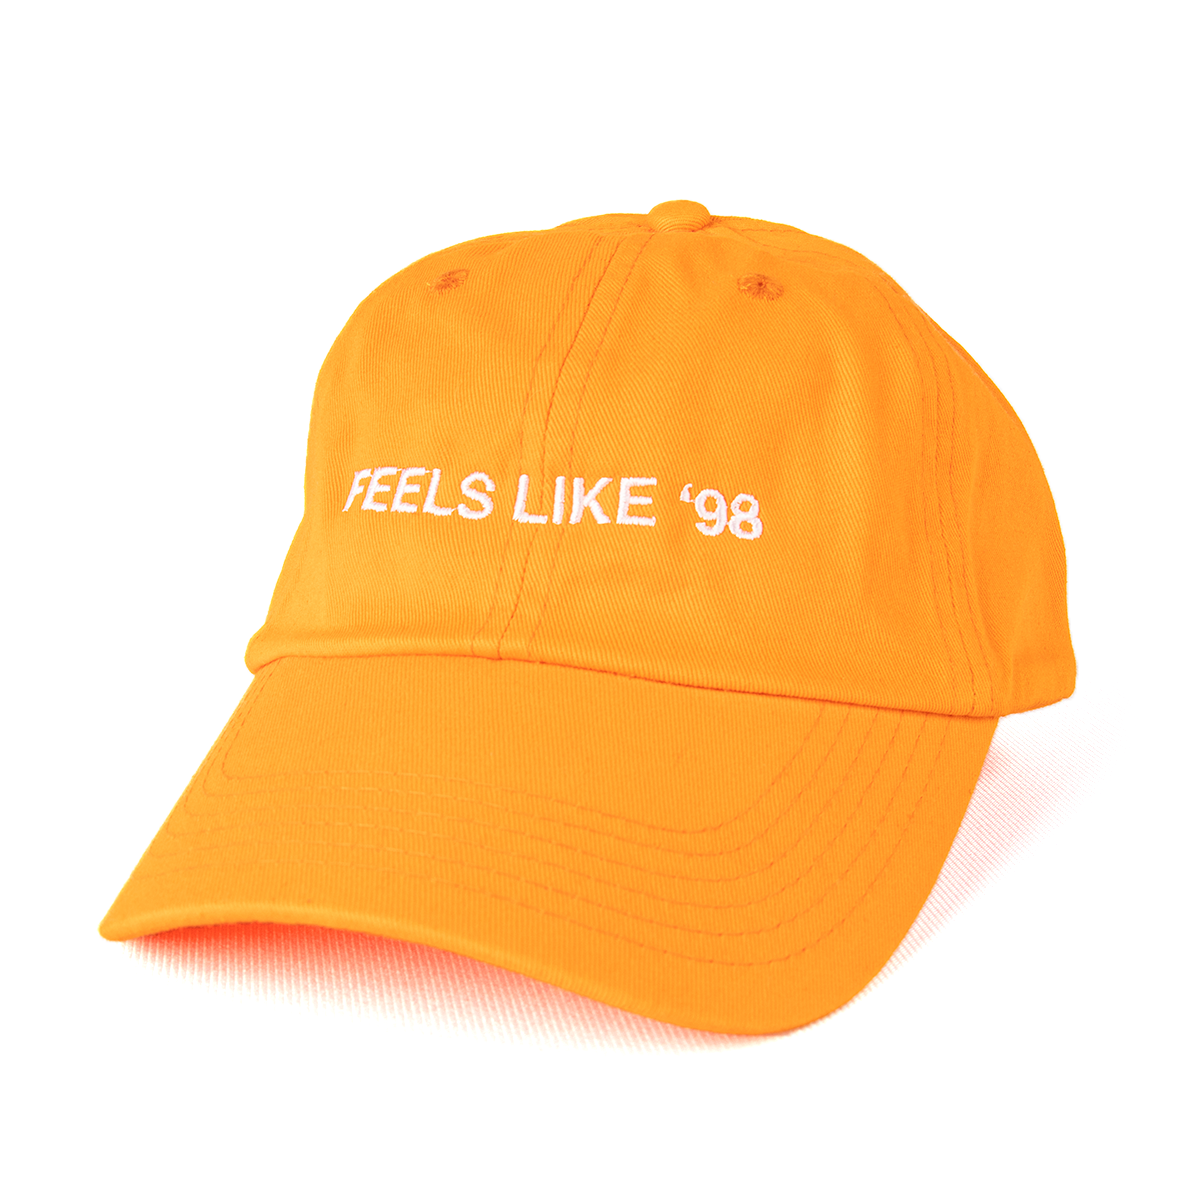 Feels Like '98 Dad Hat